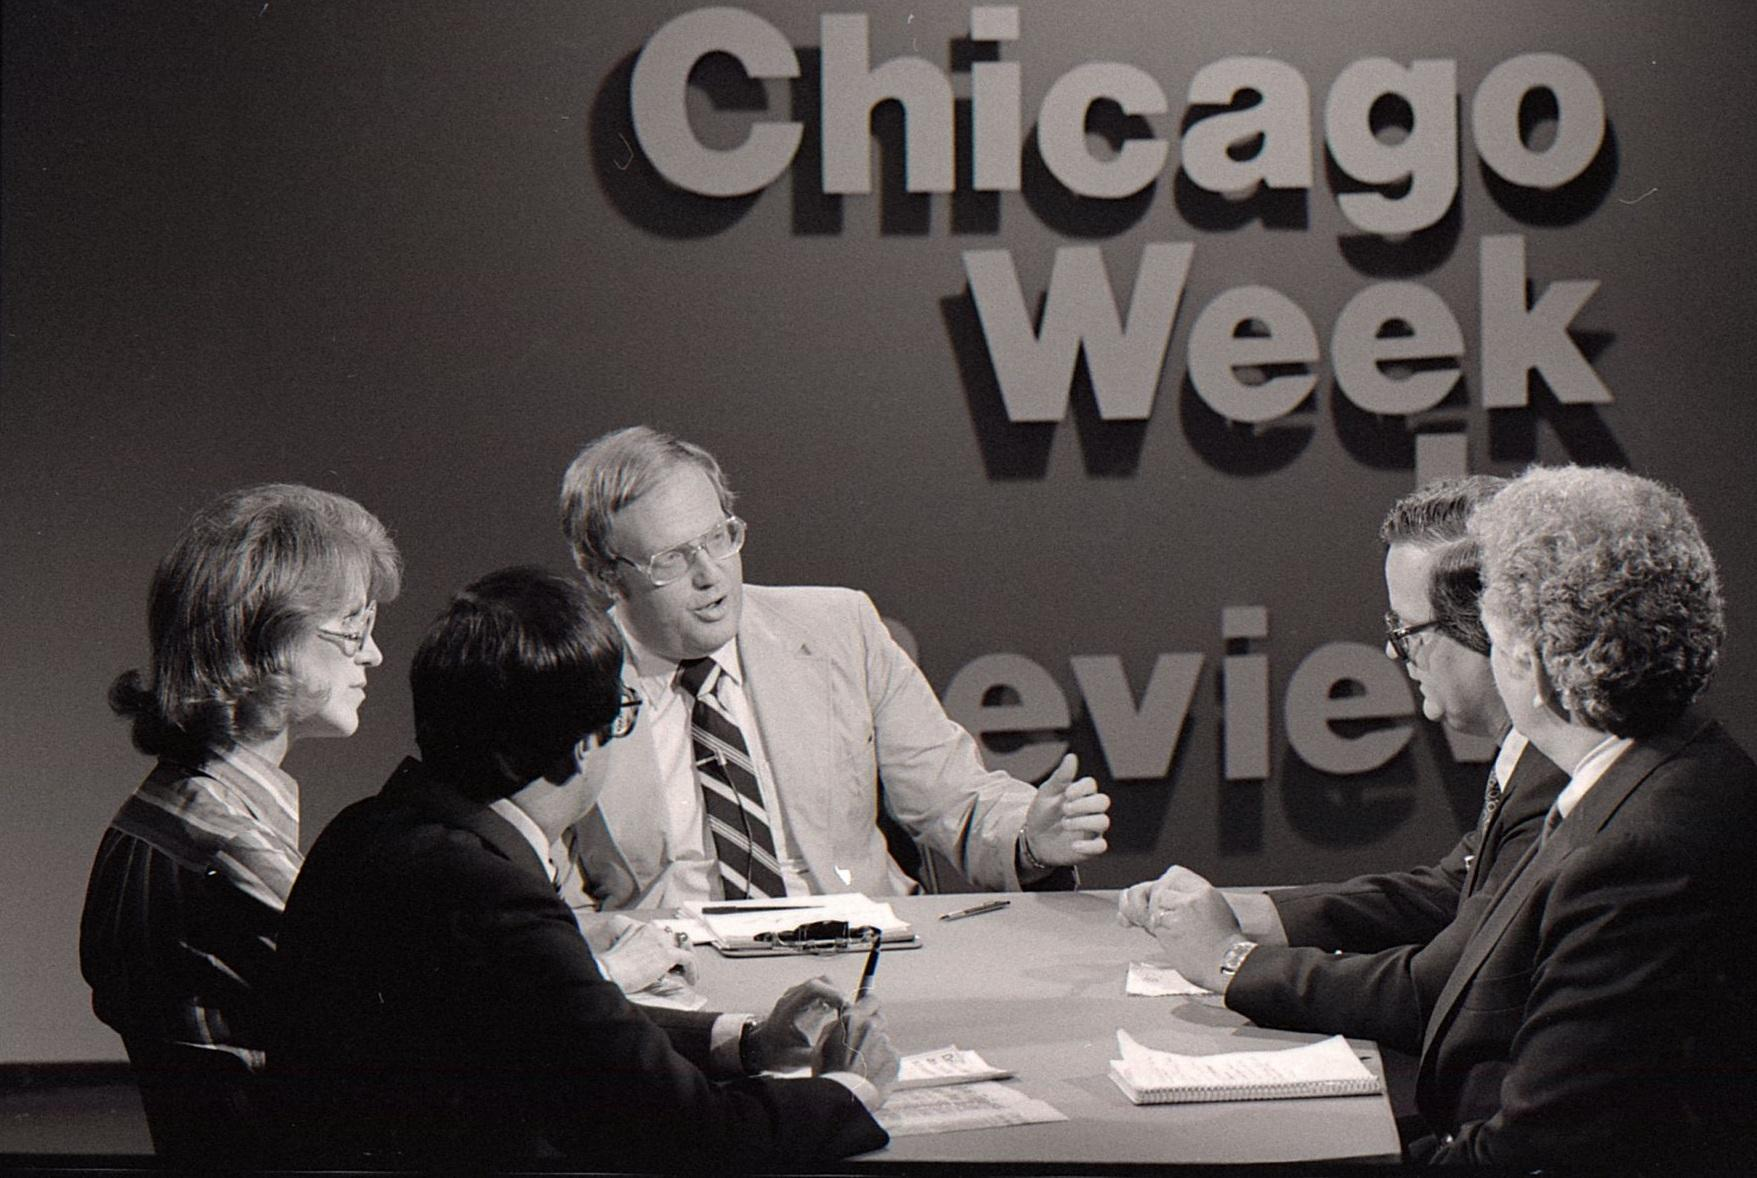 """Chicago Week in Review,"" 1980 (WTTW)"